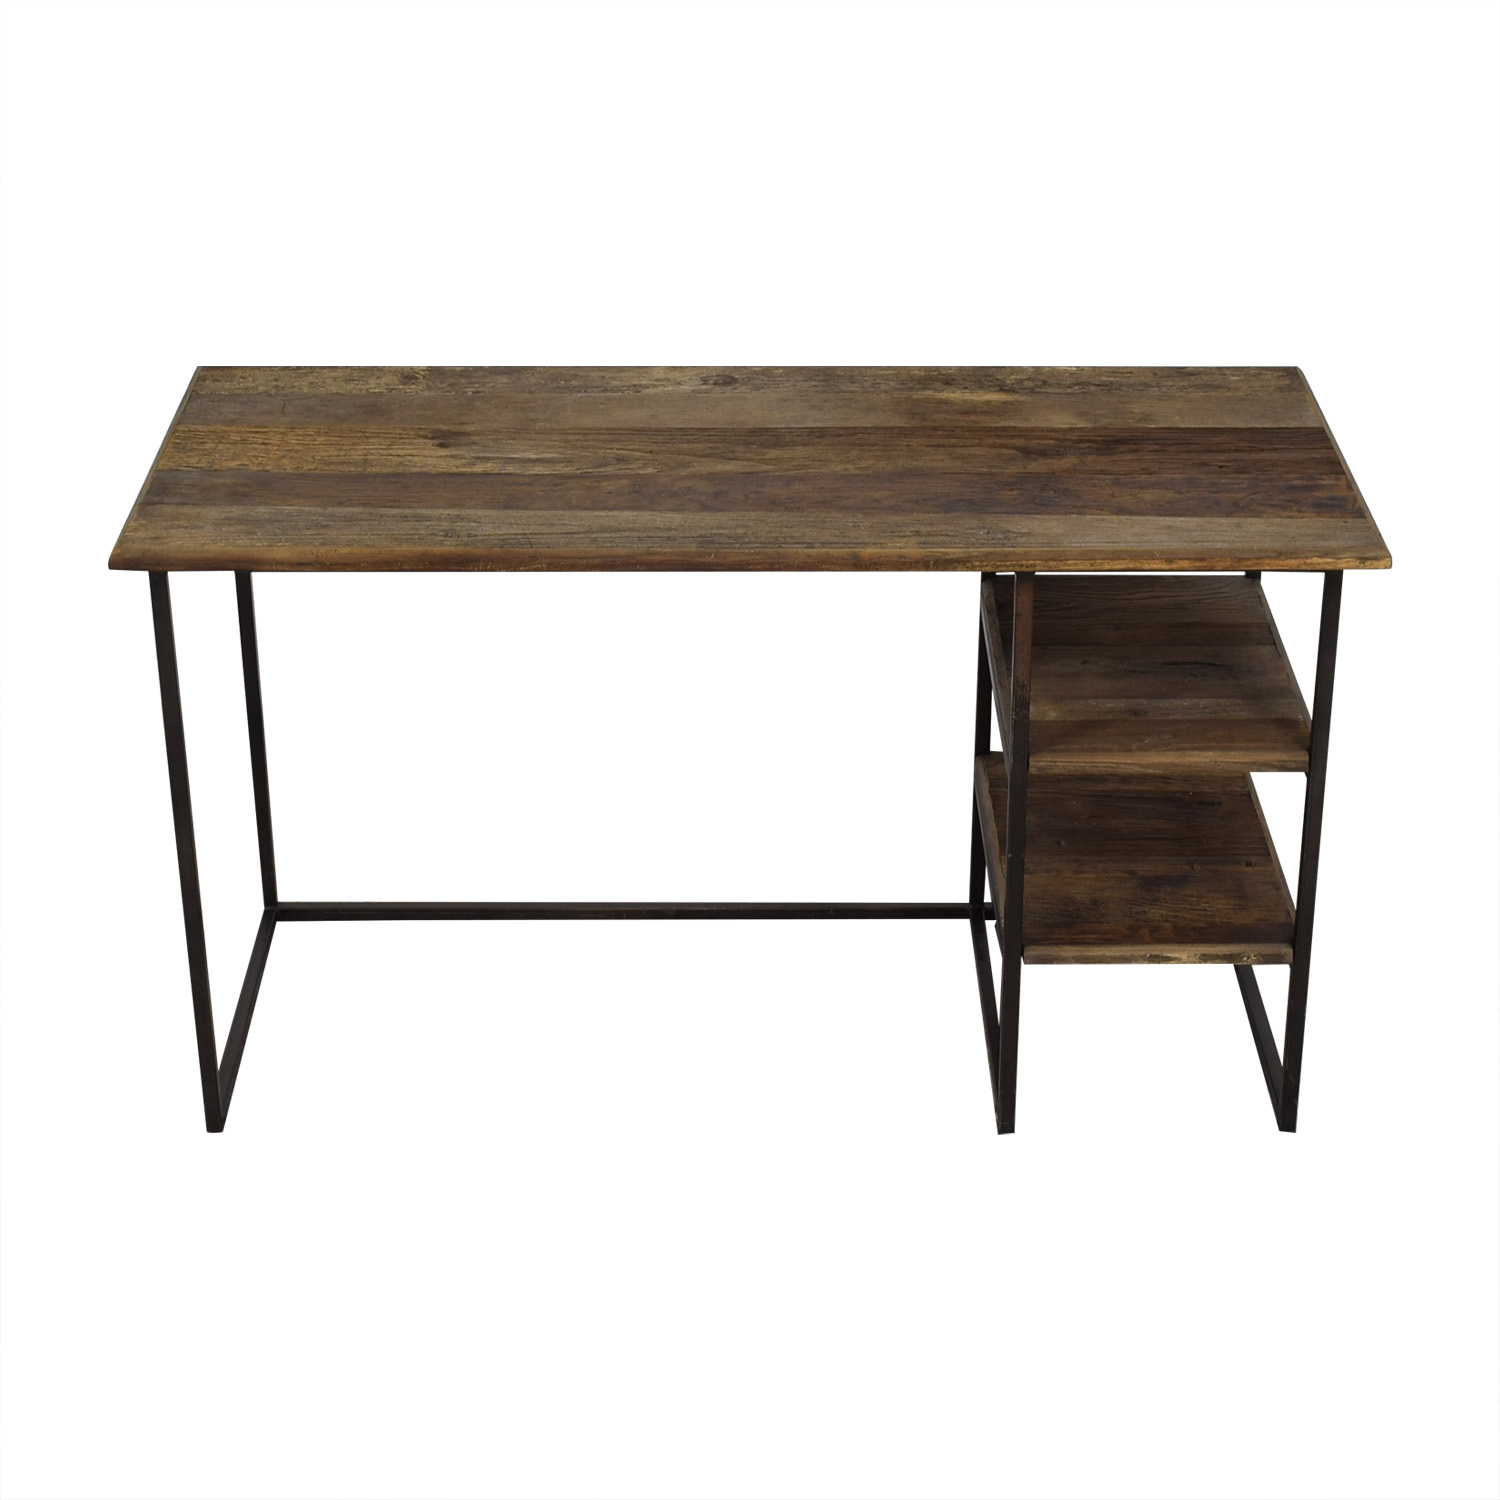 Restoration Hardware Fulton Desk sale